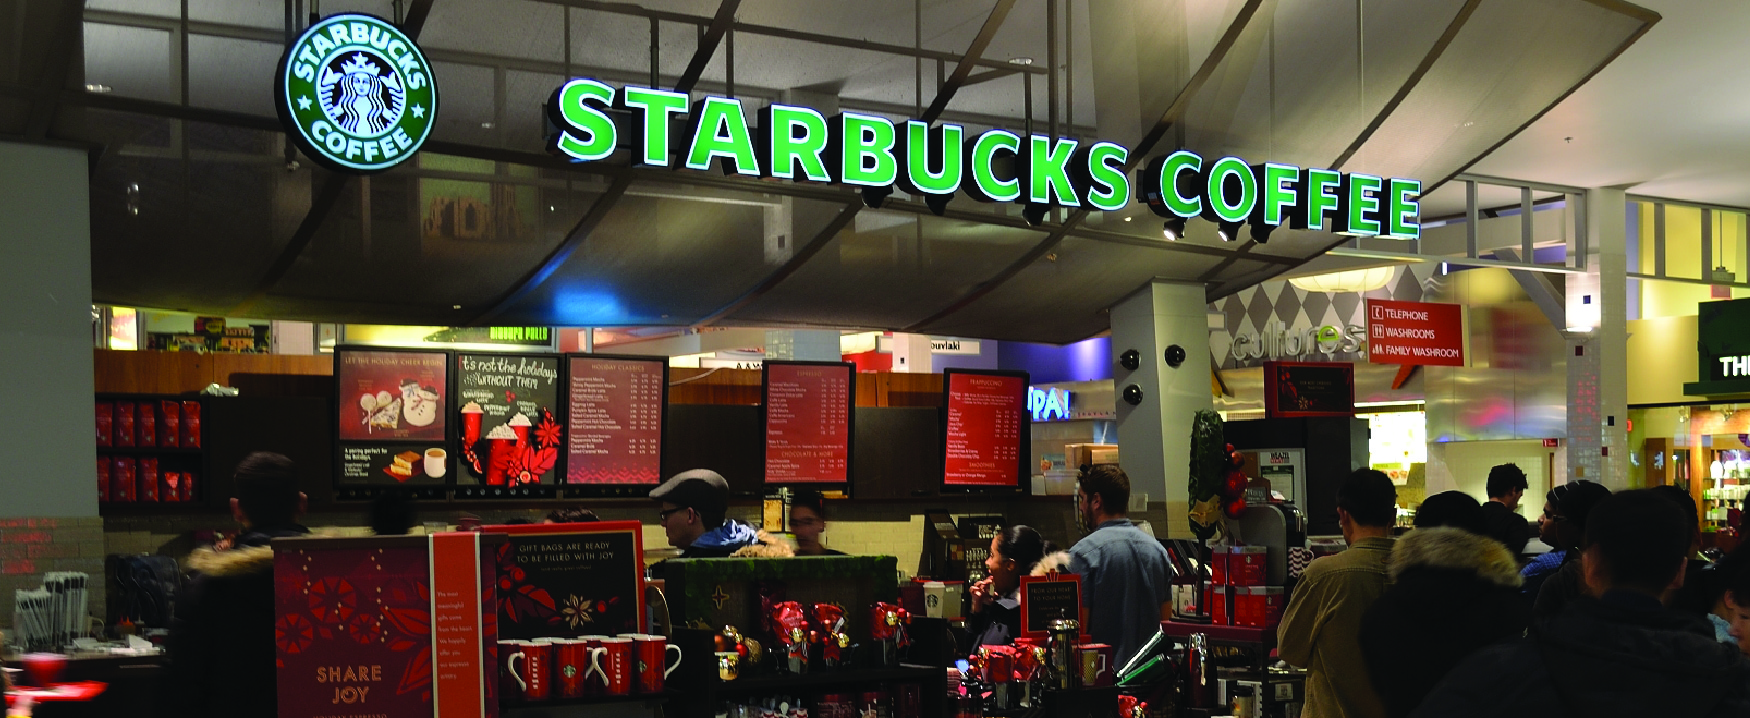 This image shows the inside of a Starbucks Coffee store.